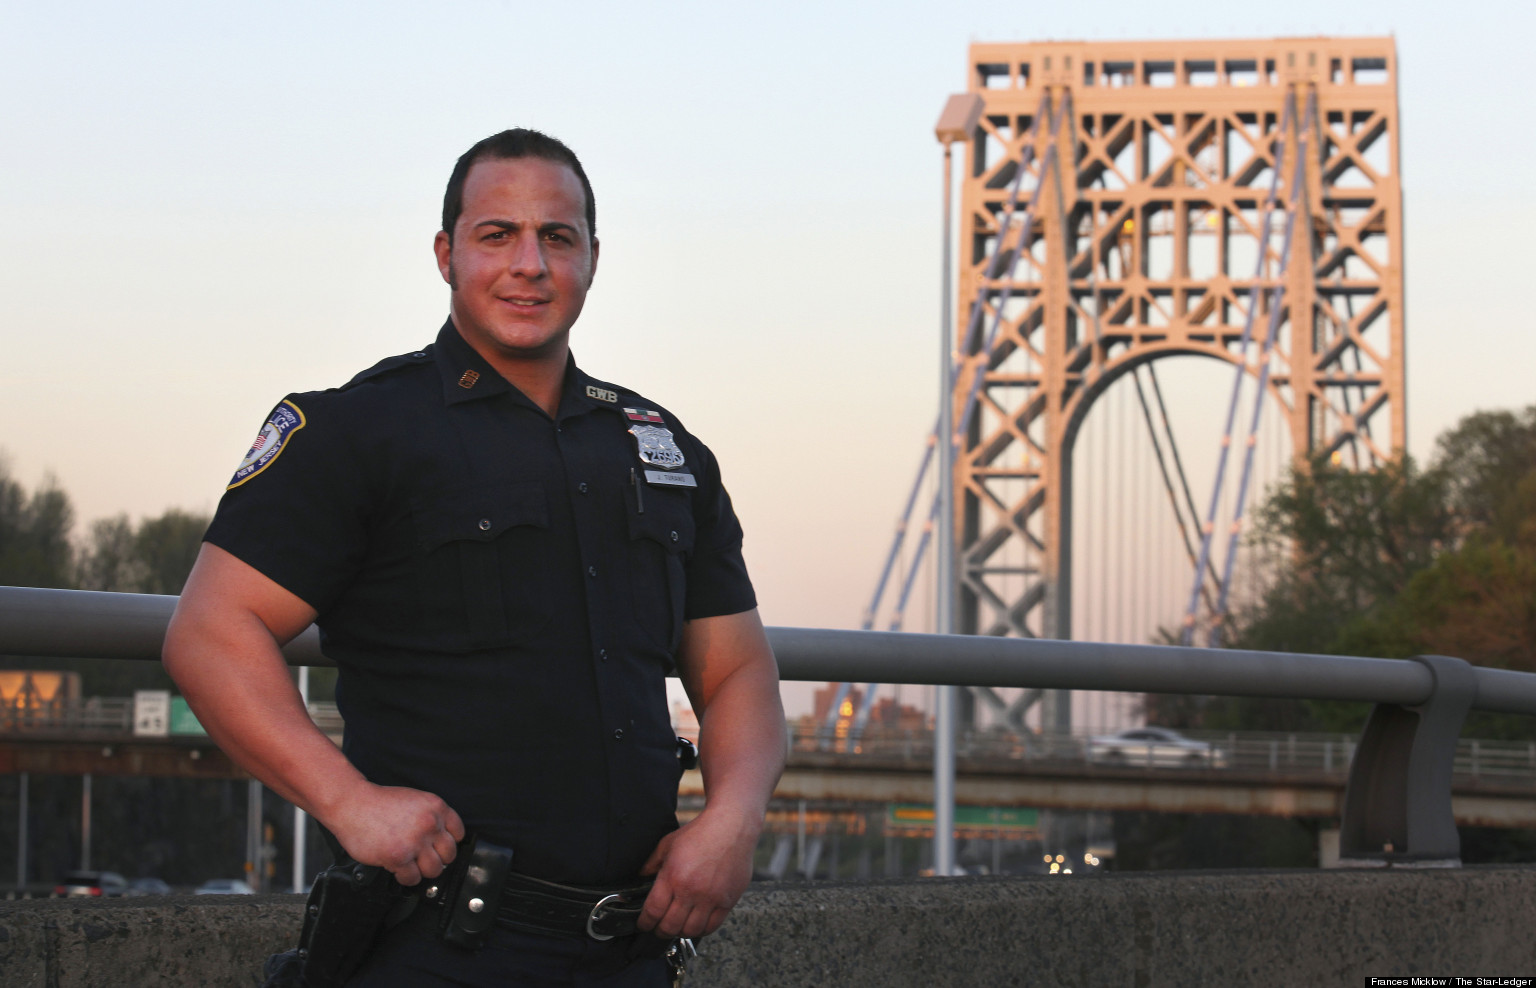 LOOK: 'Superhero' Cop Has Prevented 5 Attempted Suicides From The GW Bridge In 2013